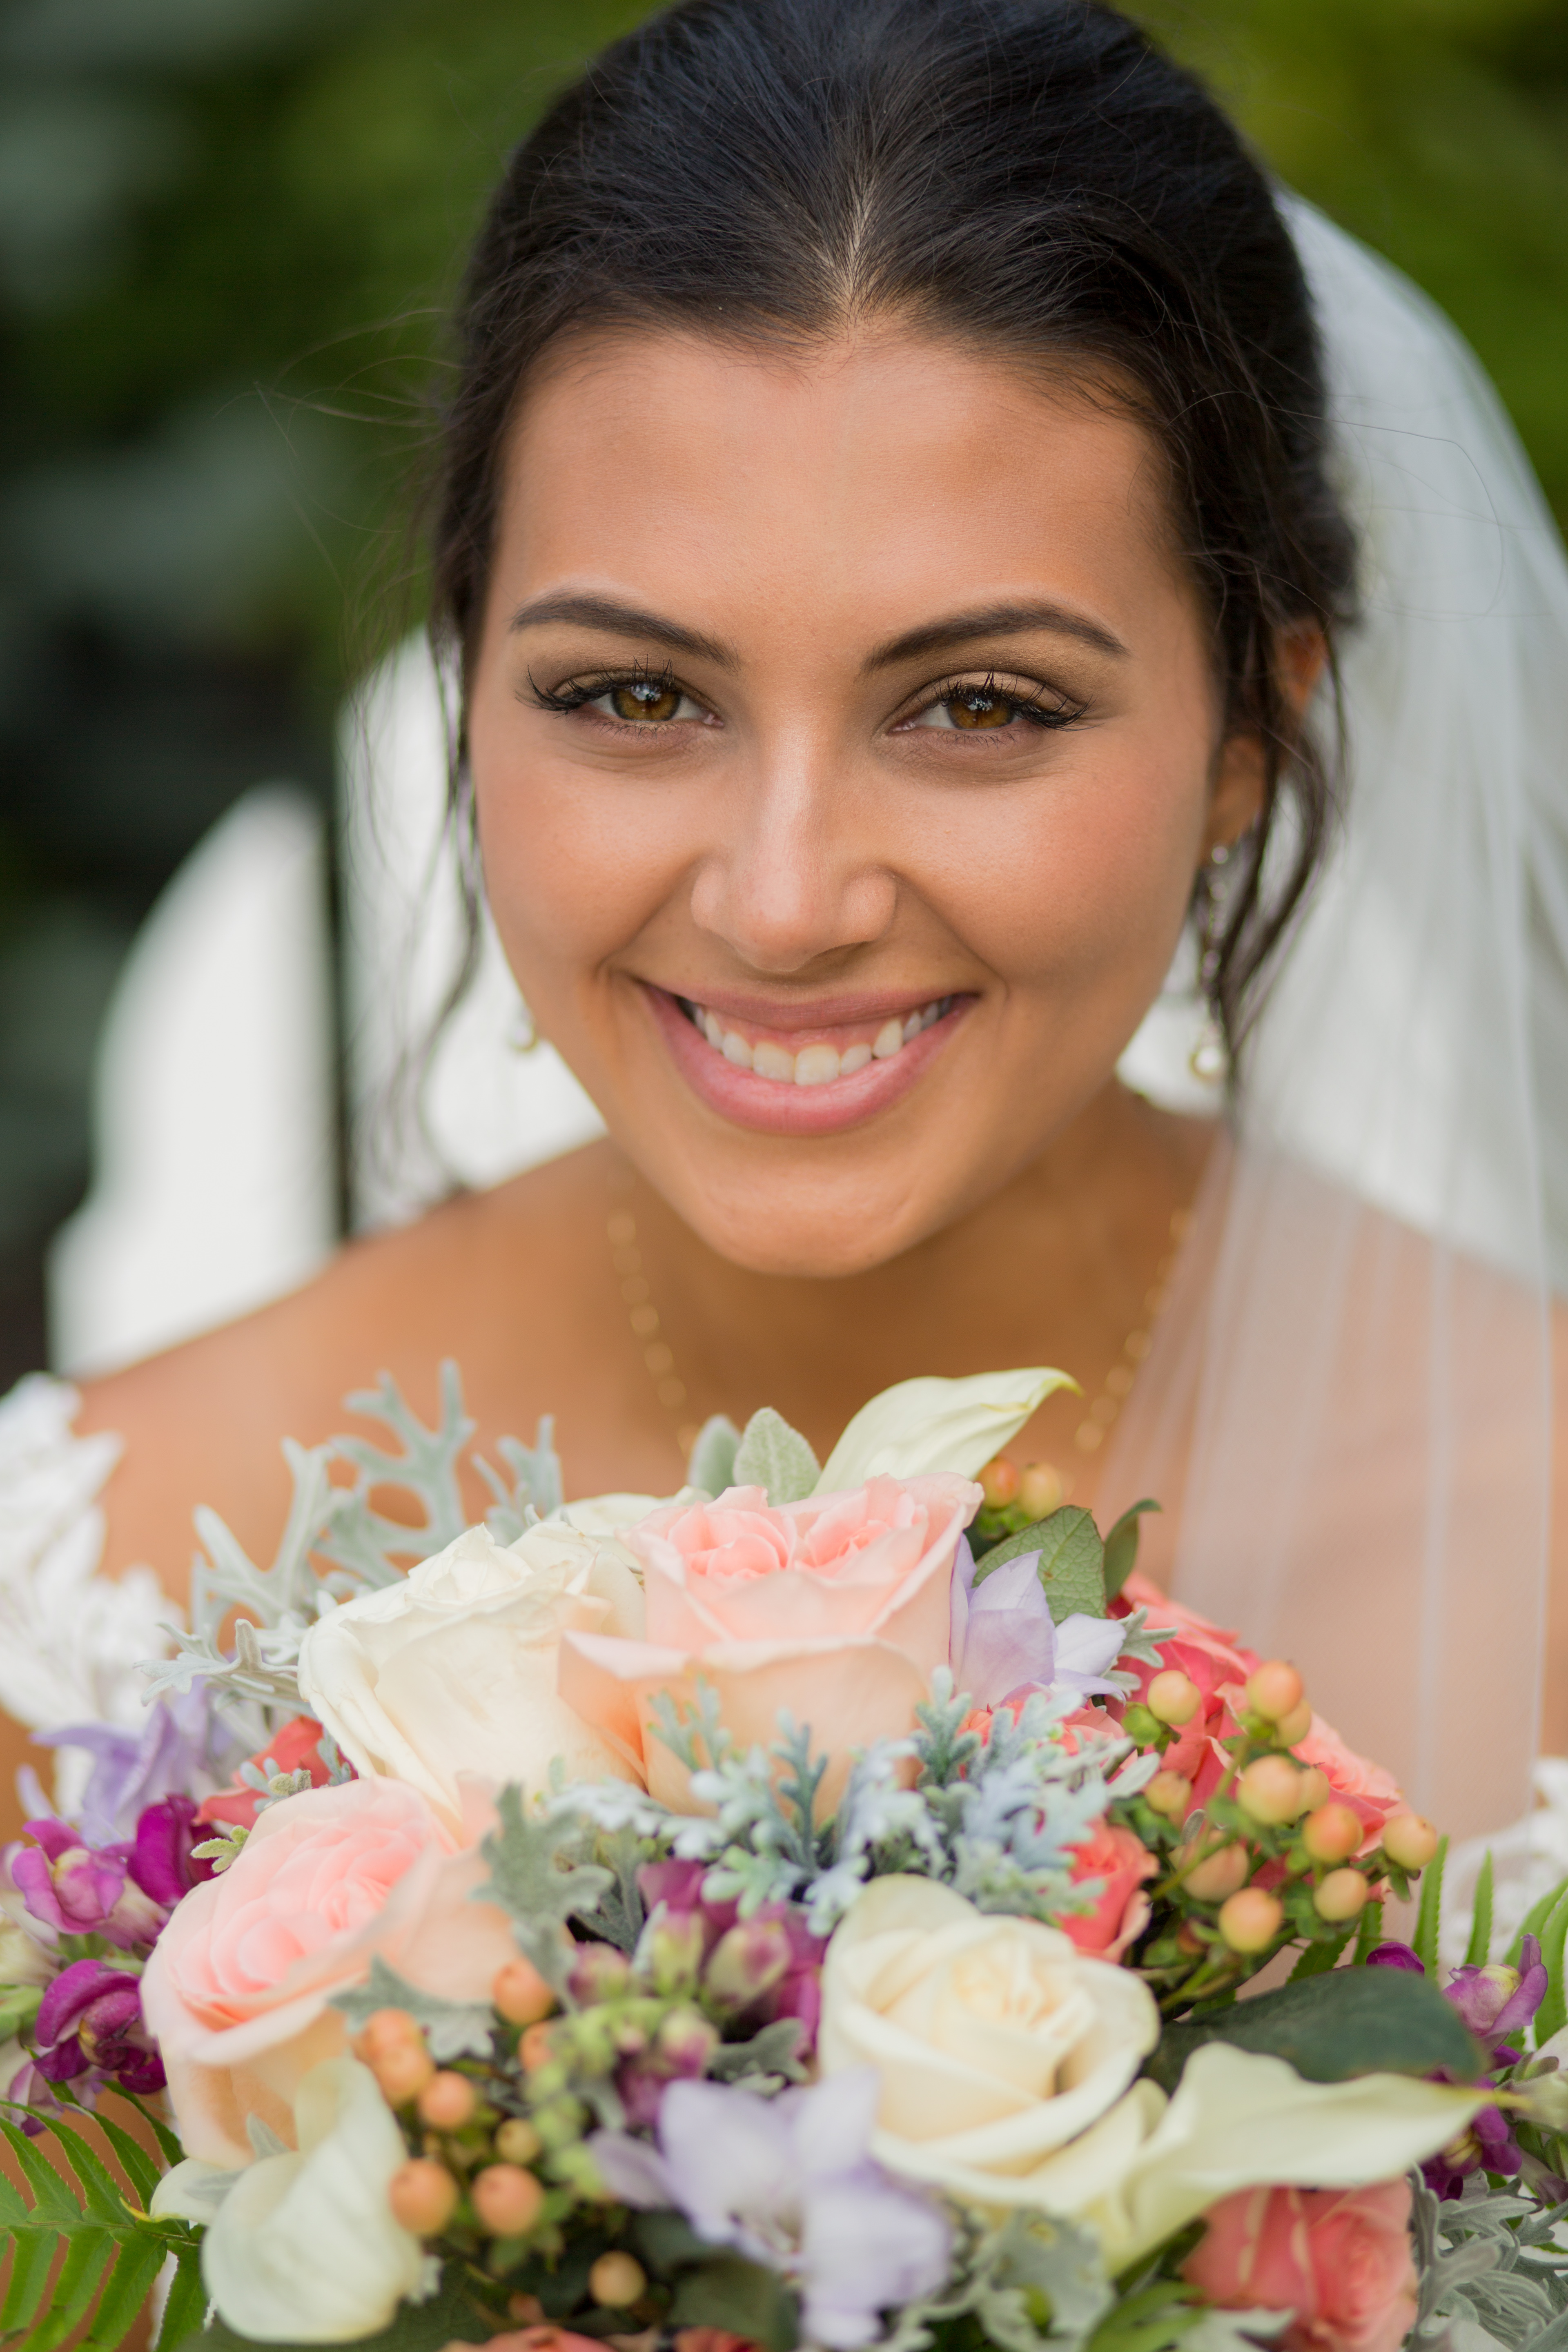 Bride Holding Bouquet Wedding Photos